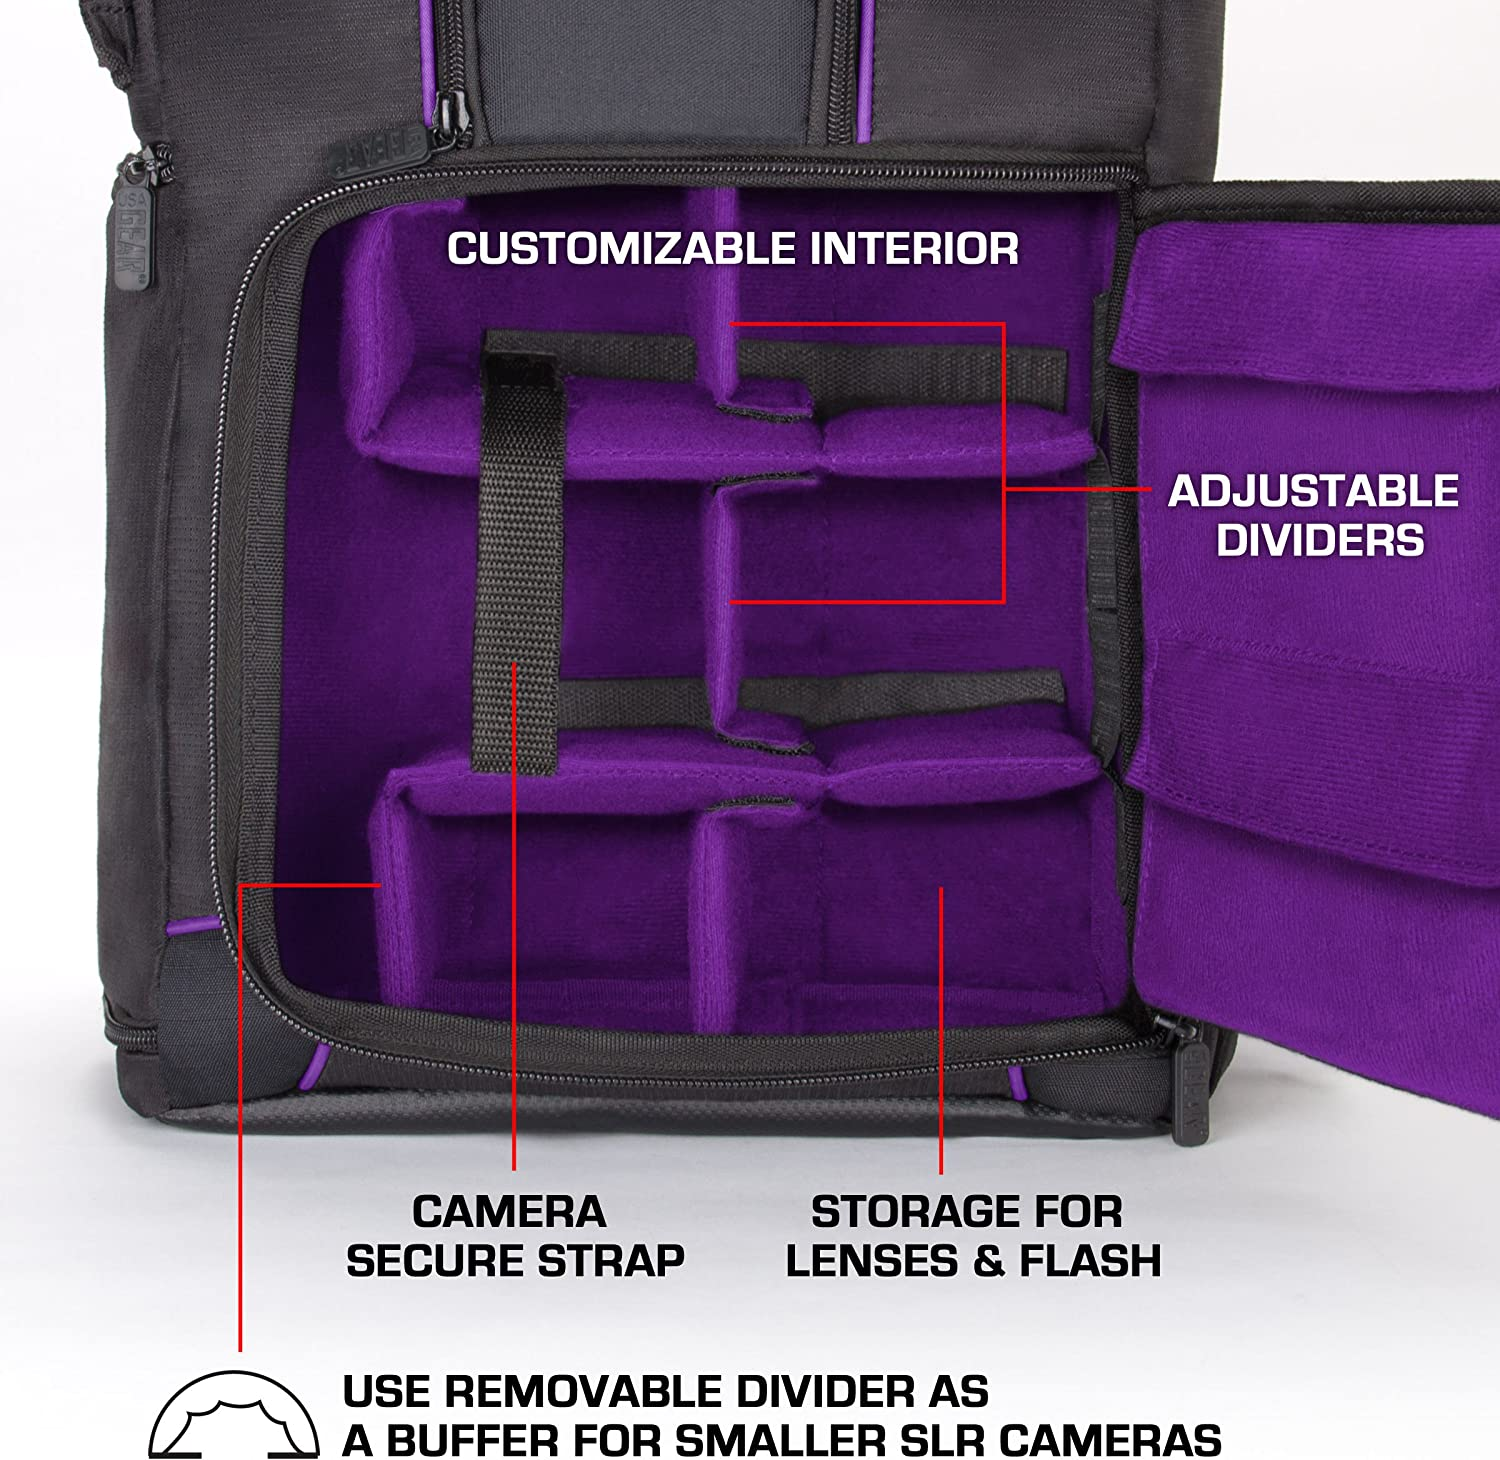 USA GEAR DSLR Camera Backpack Case (Purple) - 15.6 inch Laptop Compartment, Padded Custom Dividers, Tripod Holder, Rain Cover, Long-Lasting Durability and Storage Pockets - Compatible with Many DSLRs : Electronics